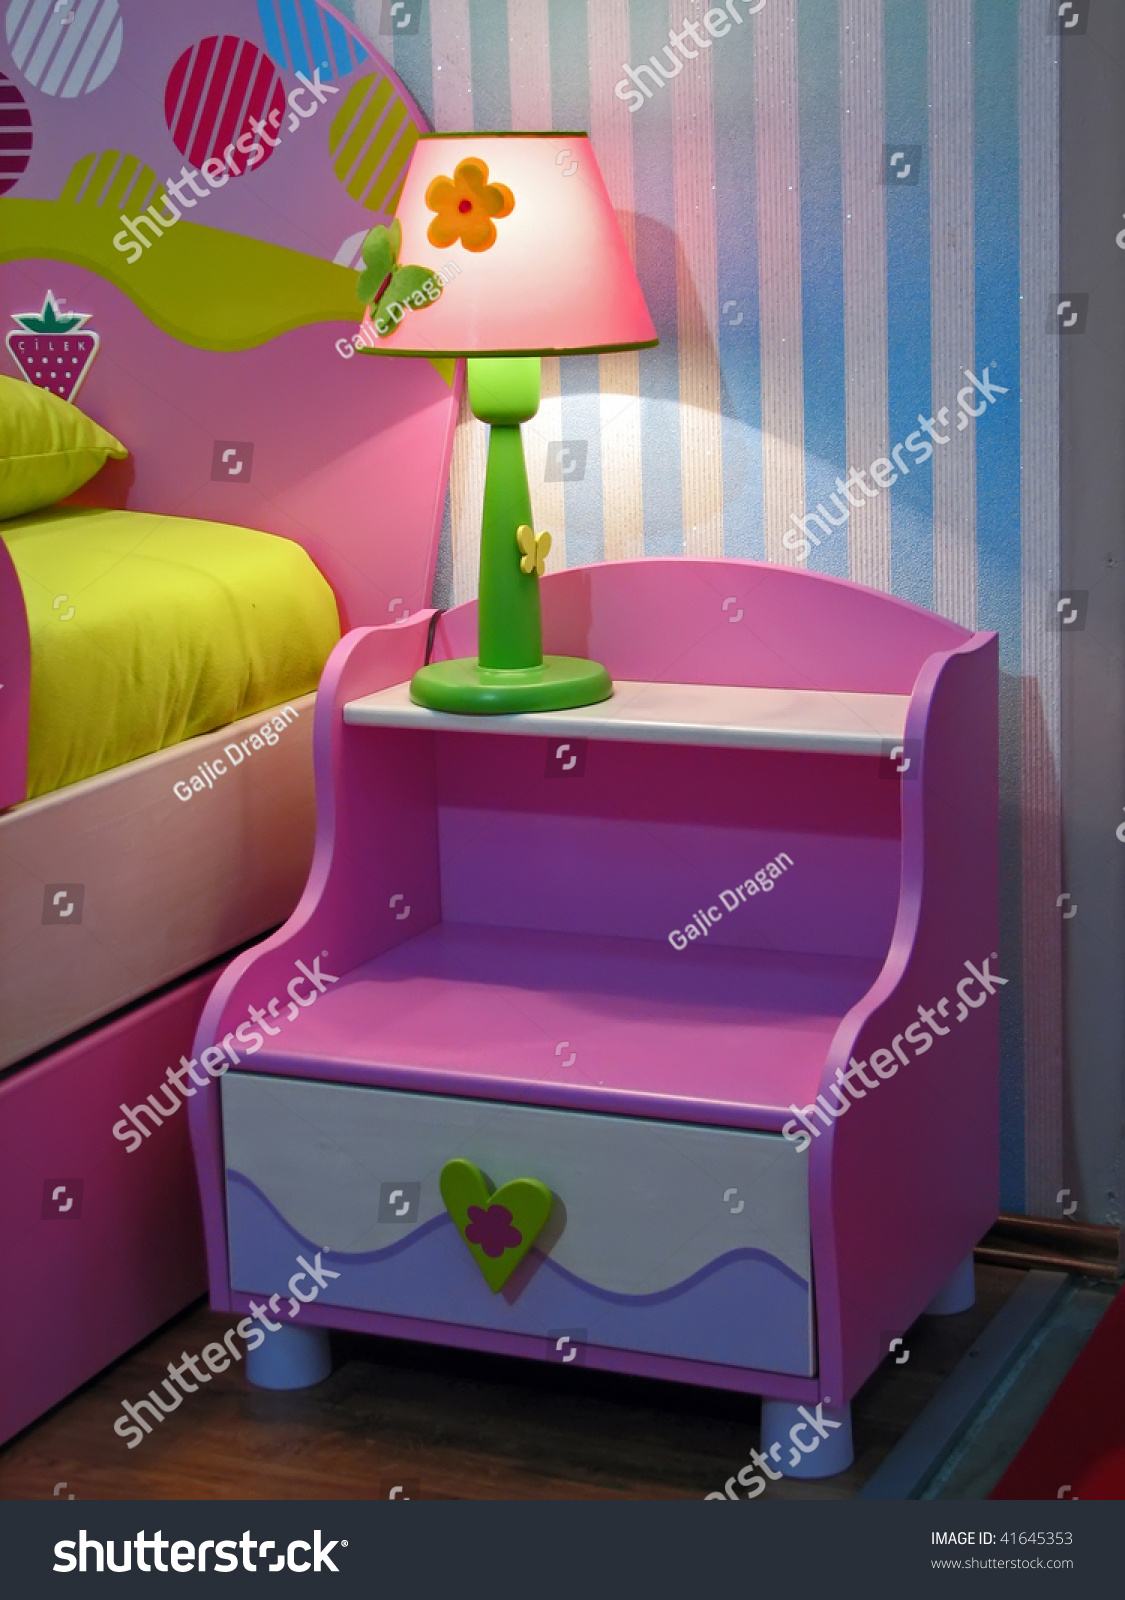 Pink Bedside Table: Kids Room Night Table. Colorful Night Table. Pink Bedside